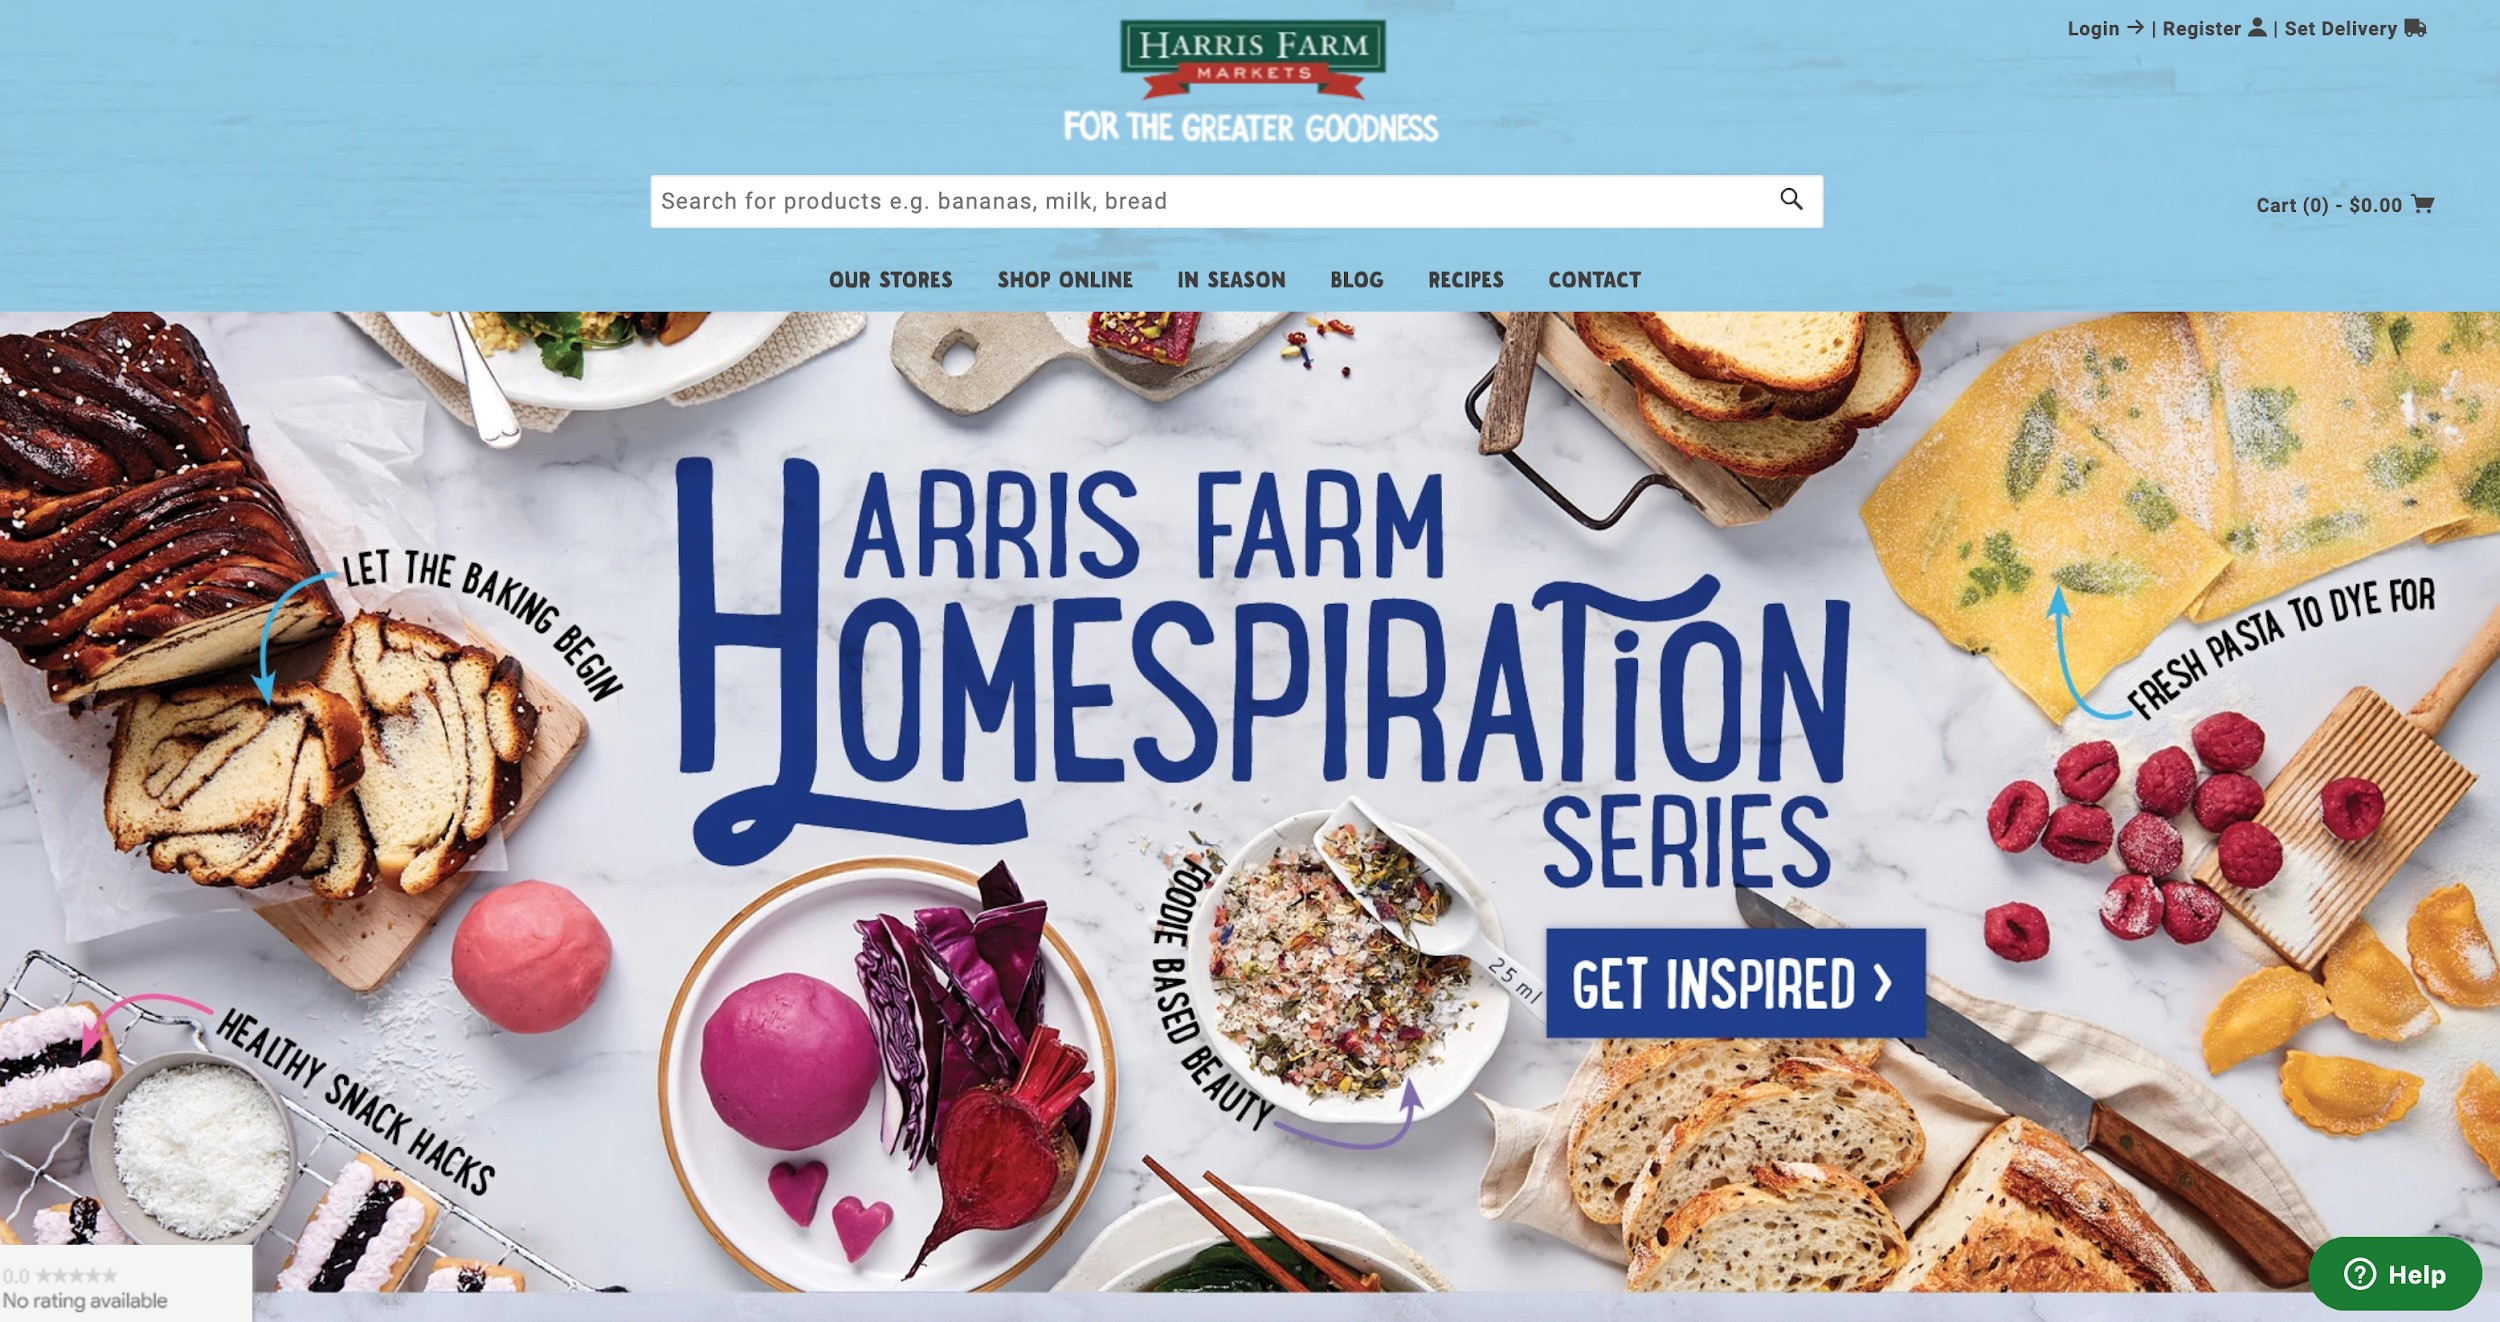 harris farm markets best e-commerce site